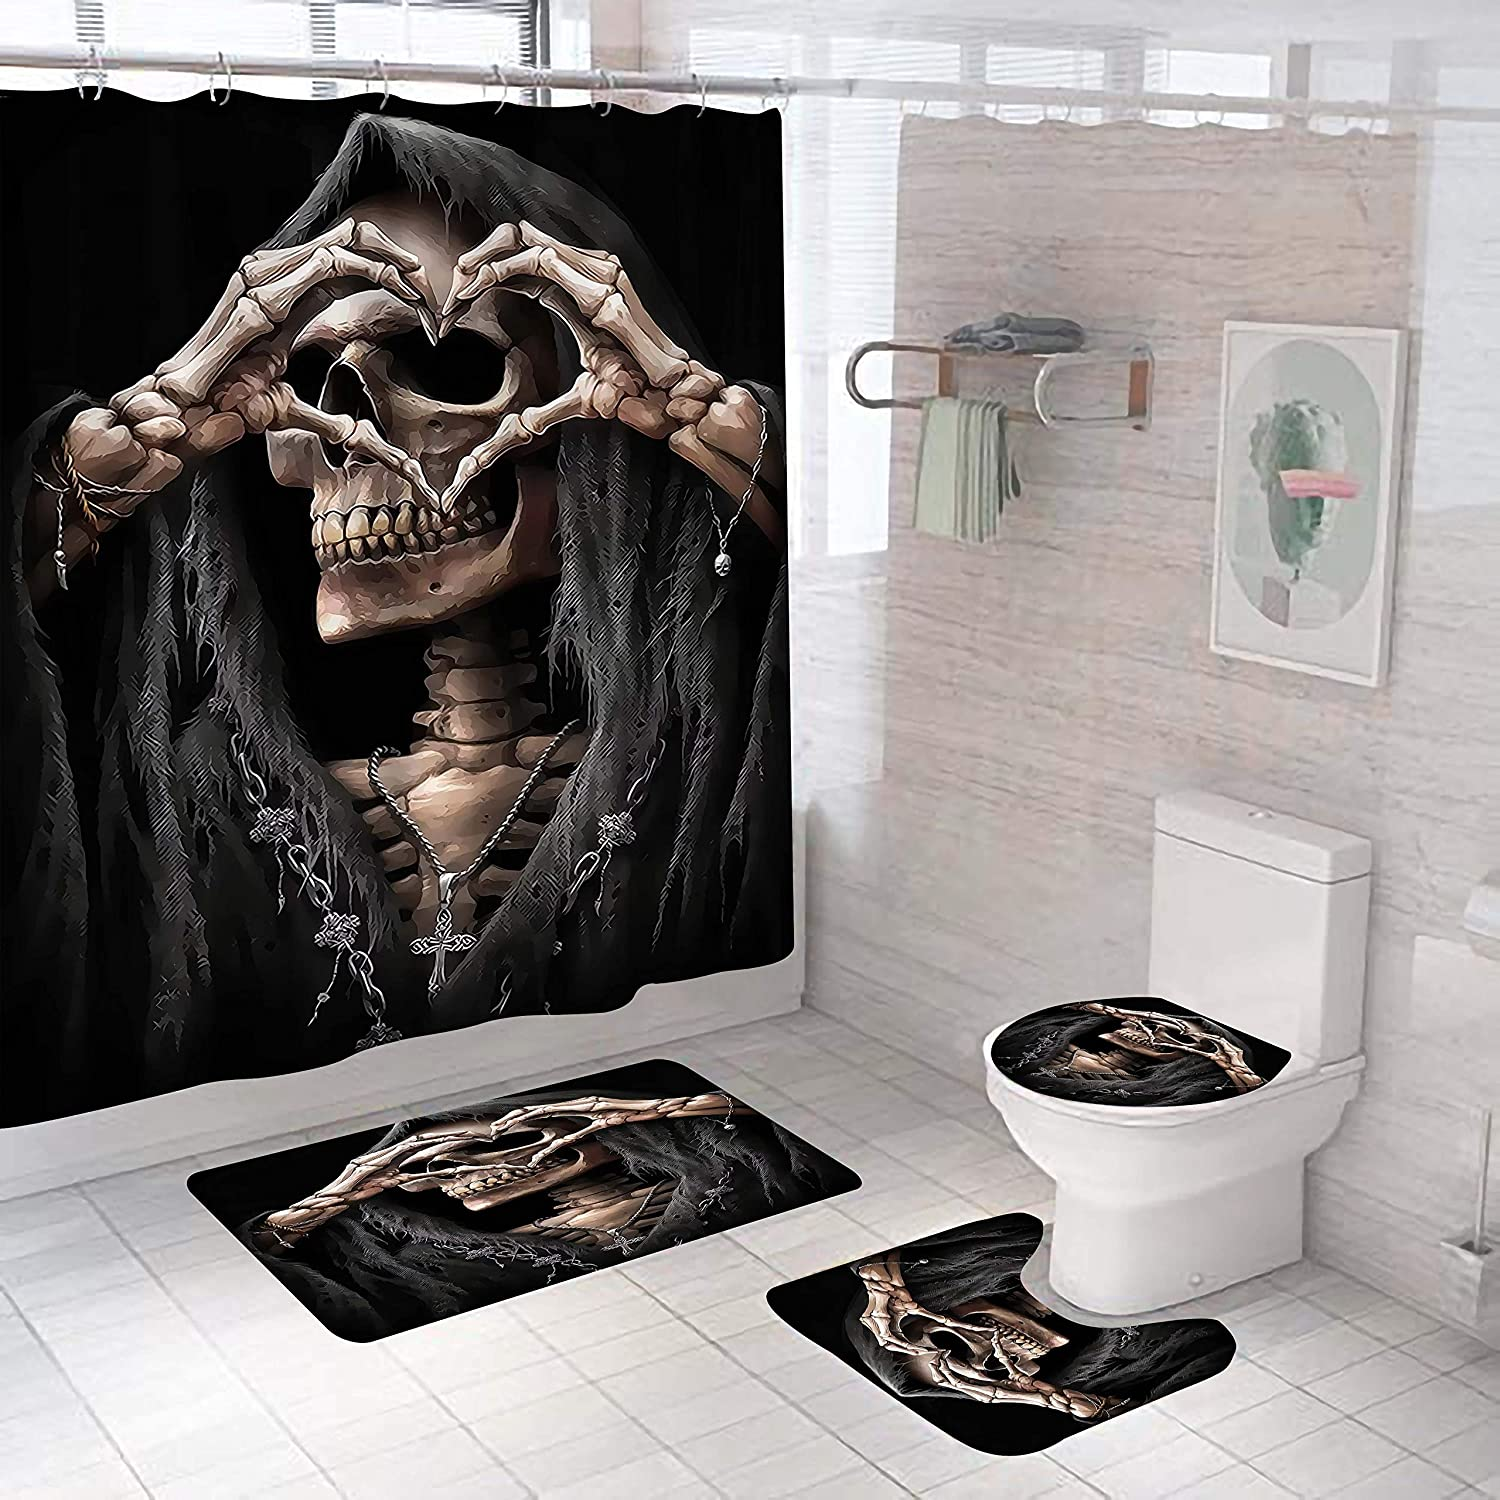 BestFire 4pcs Black Shower Curtain Sets with Non-Slip Bathroom Rugs, Toilet Lid Cover and Bath Mat, Loving Heart Skull Shower Curtains with 12 Hooks for Halloween Bathroom Decor, 71